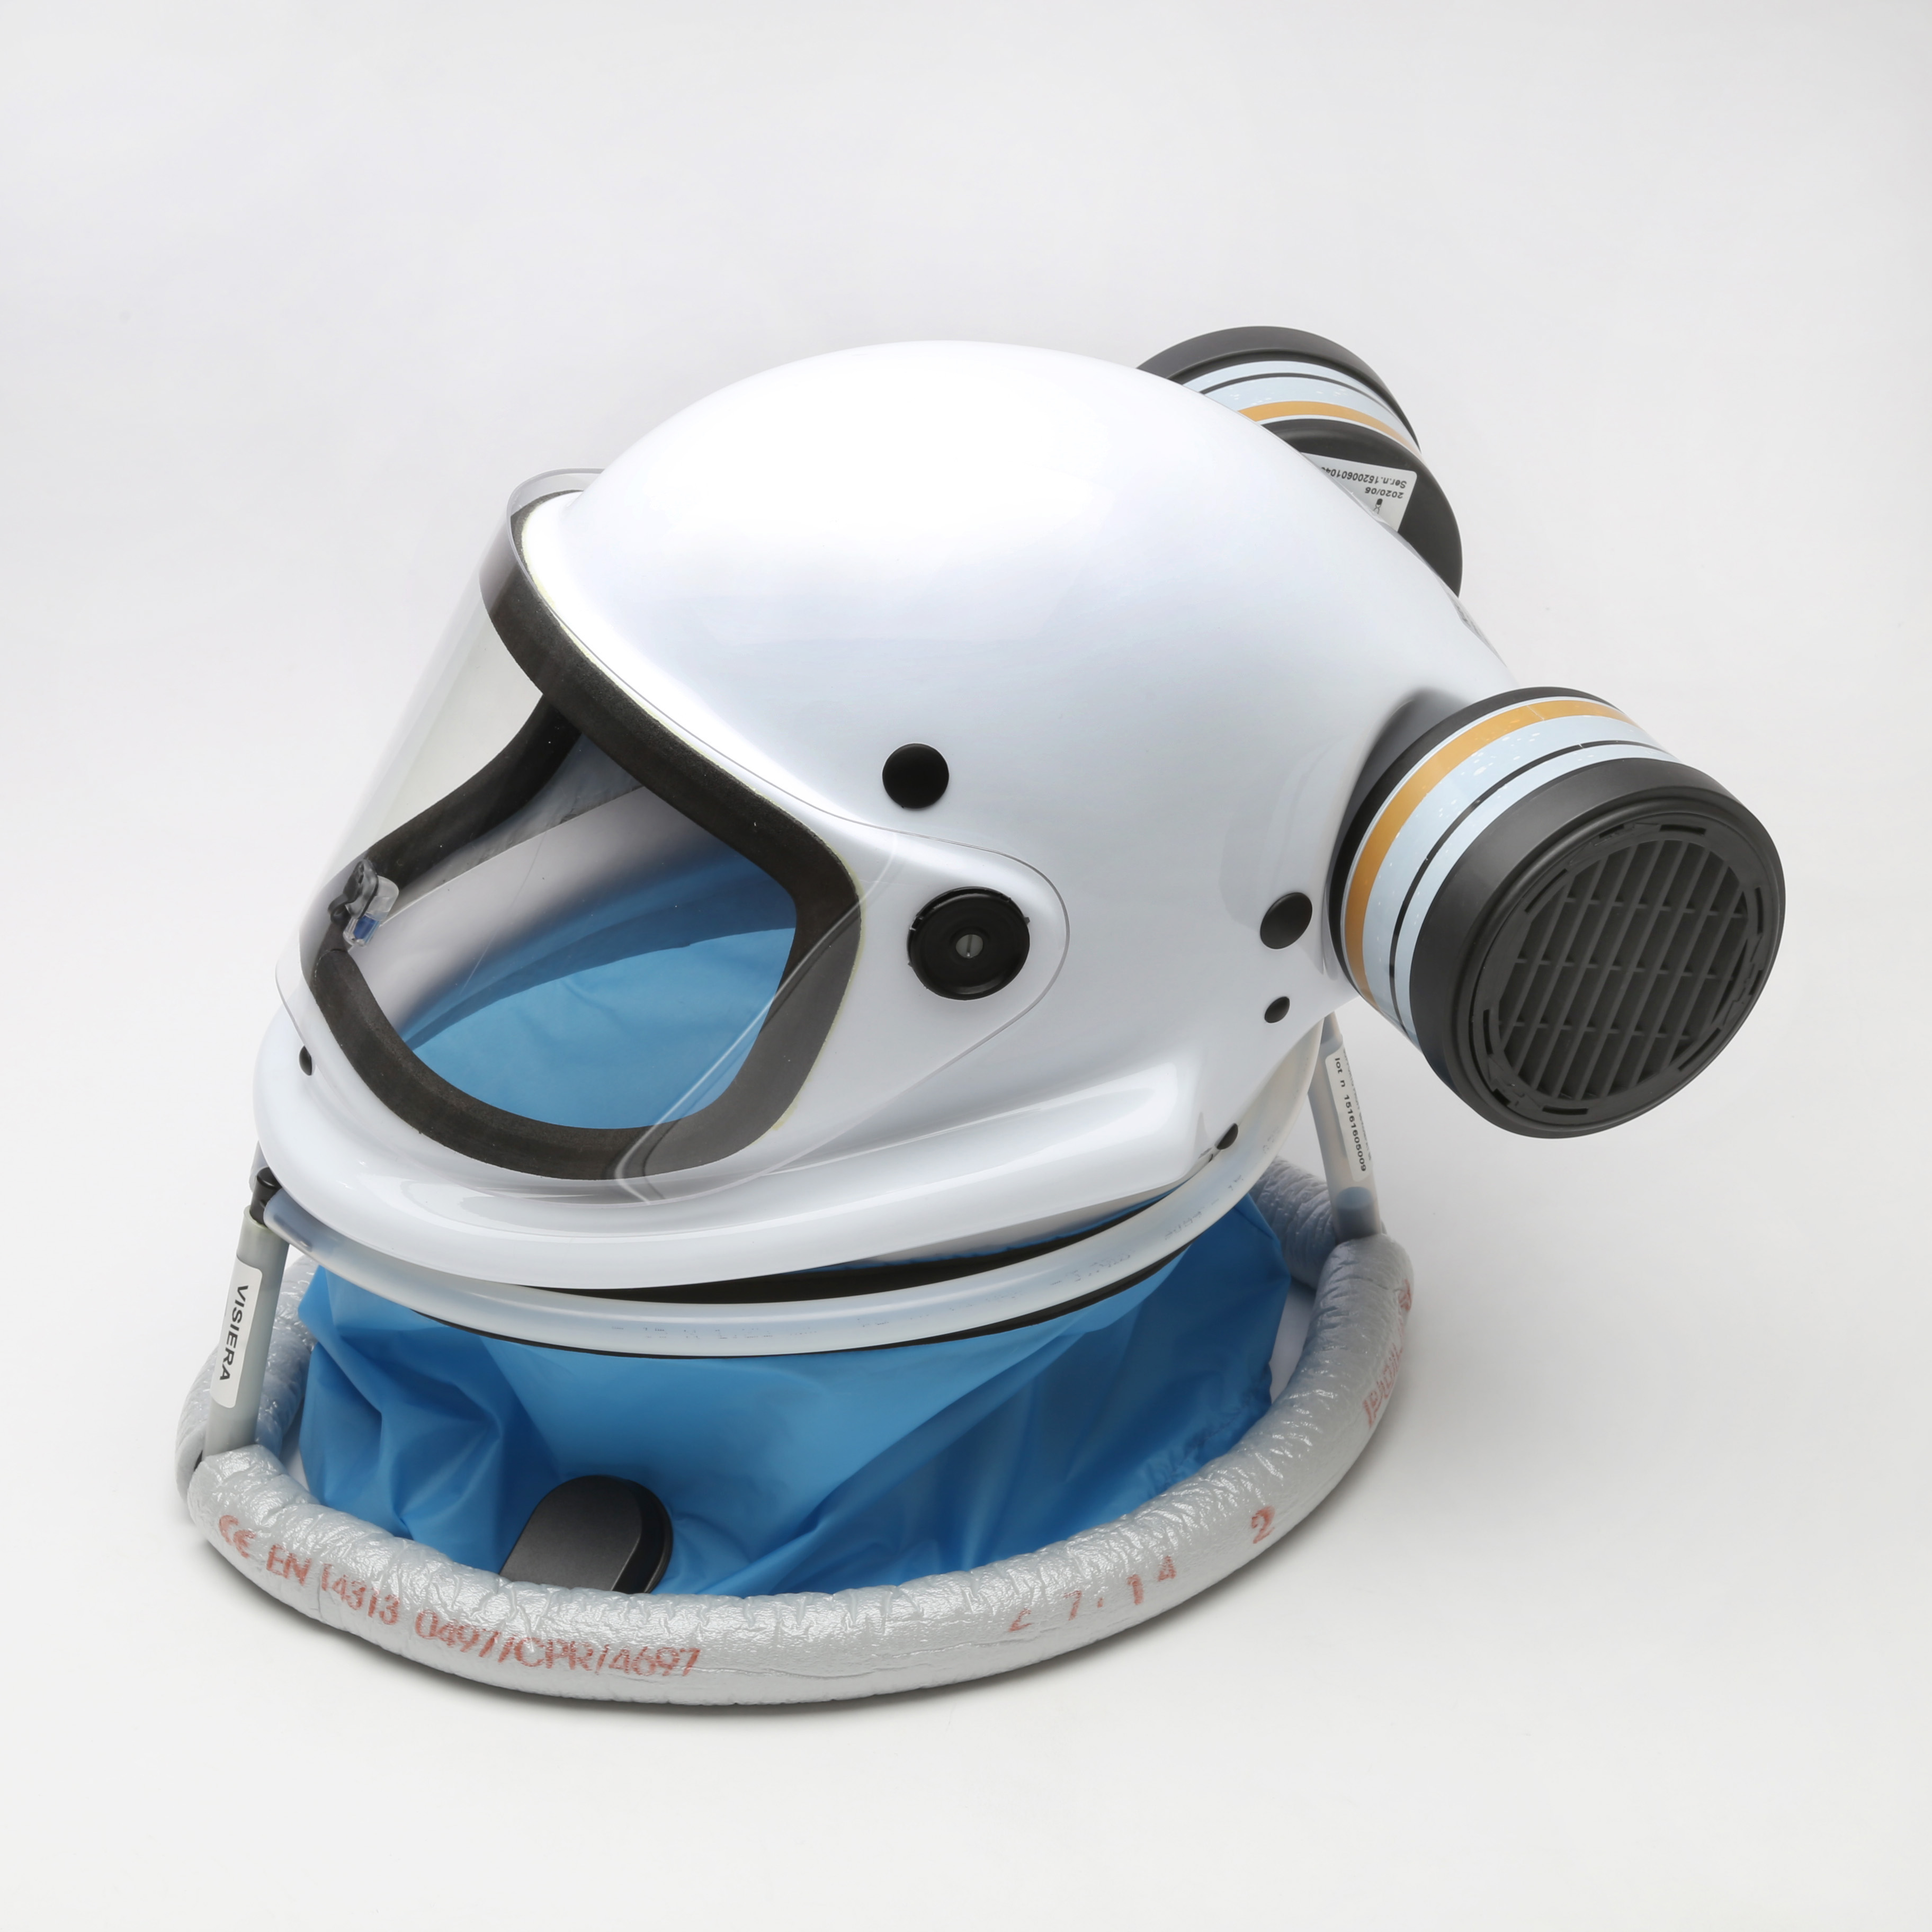 ronco n95 mask